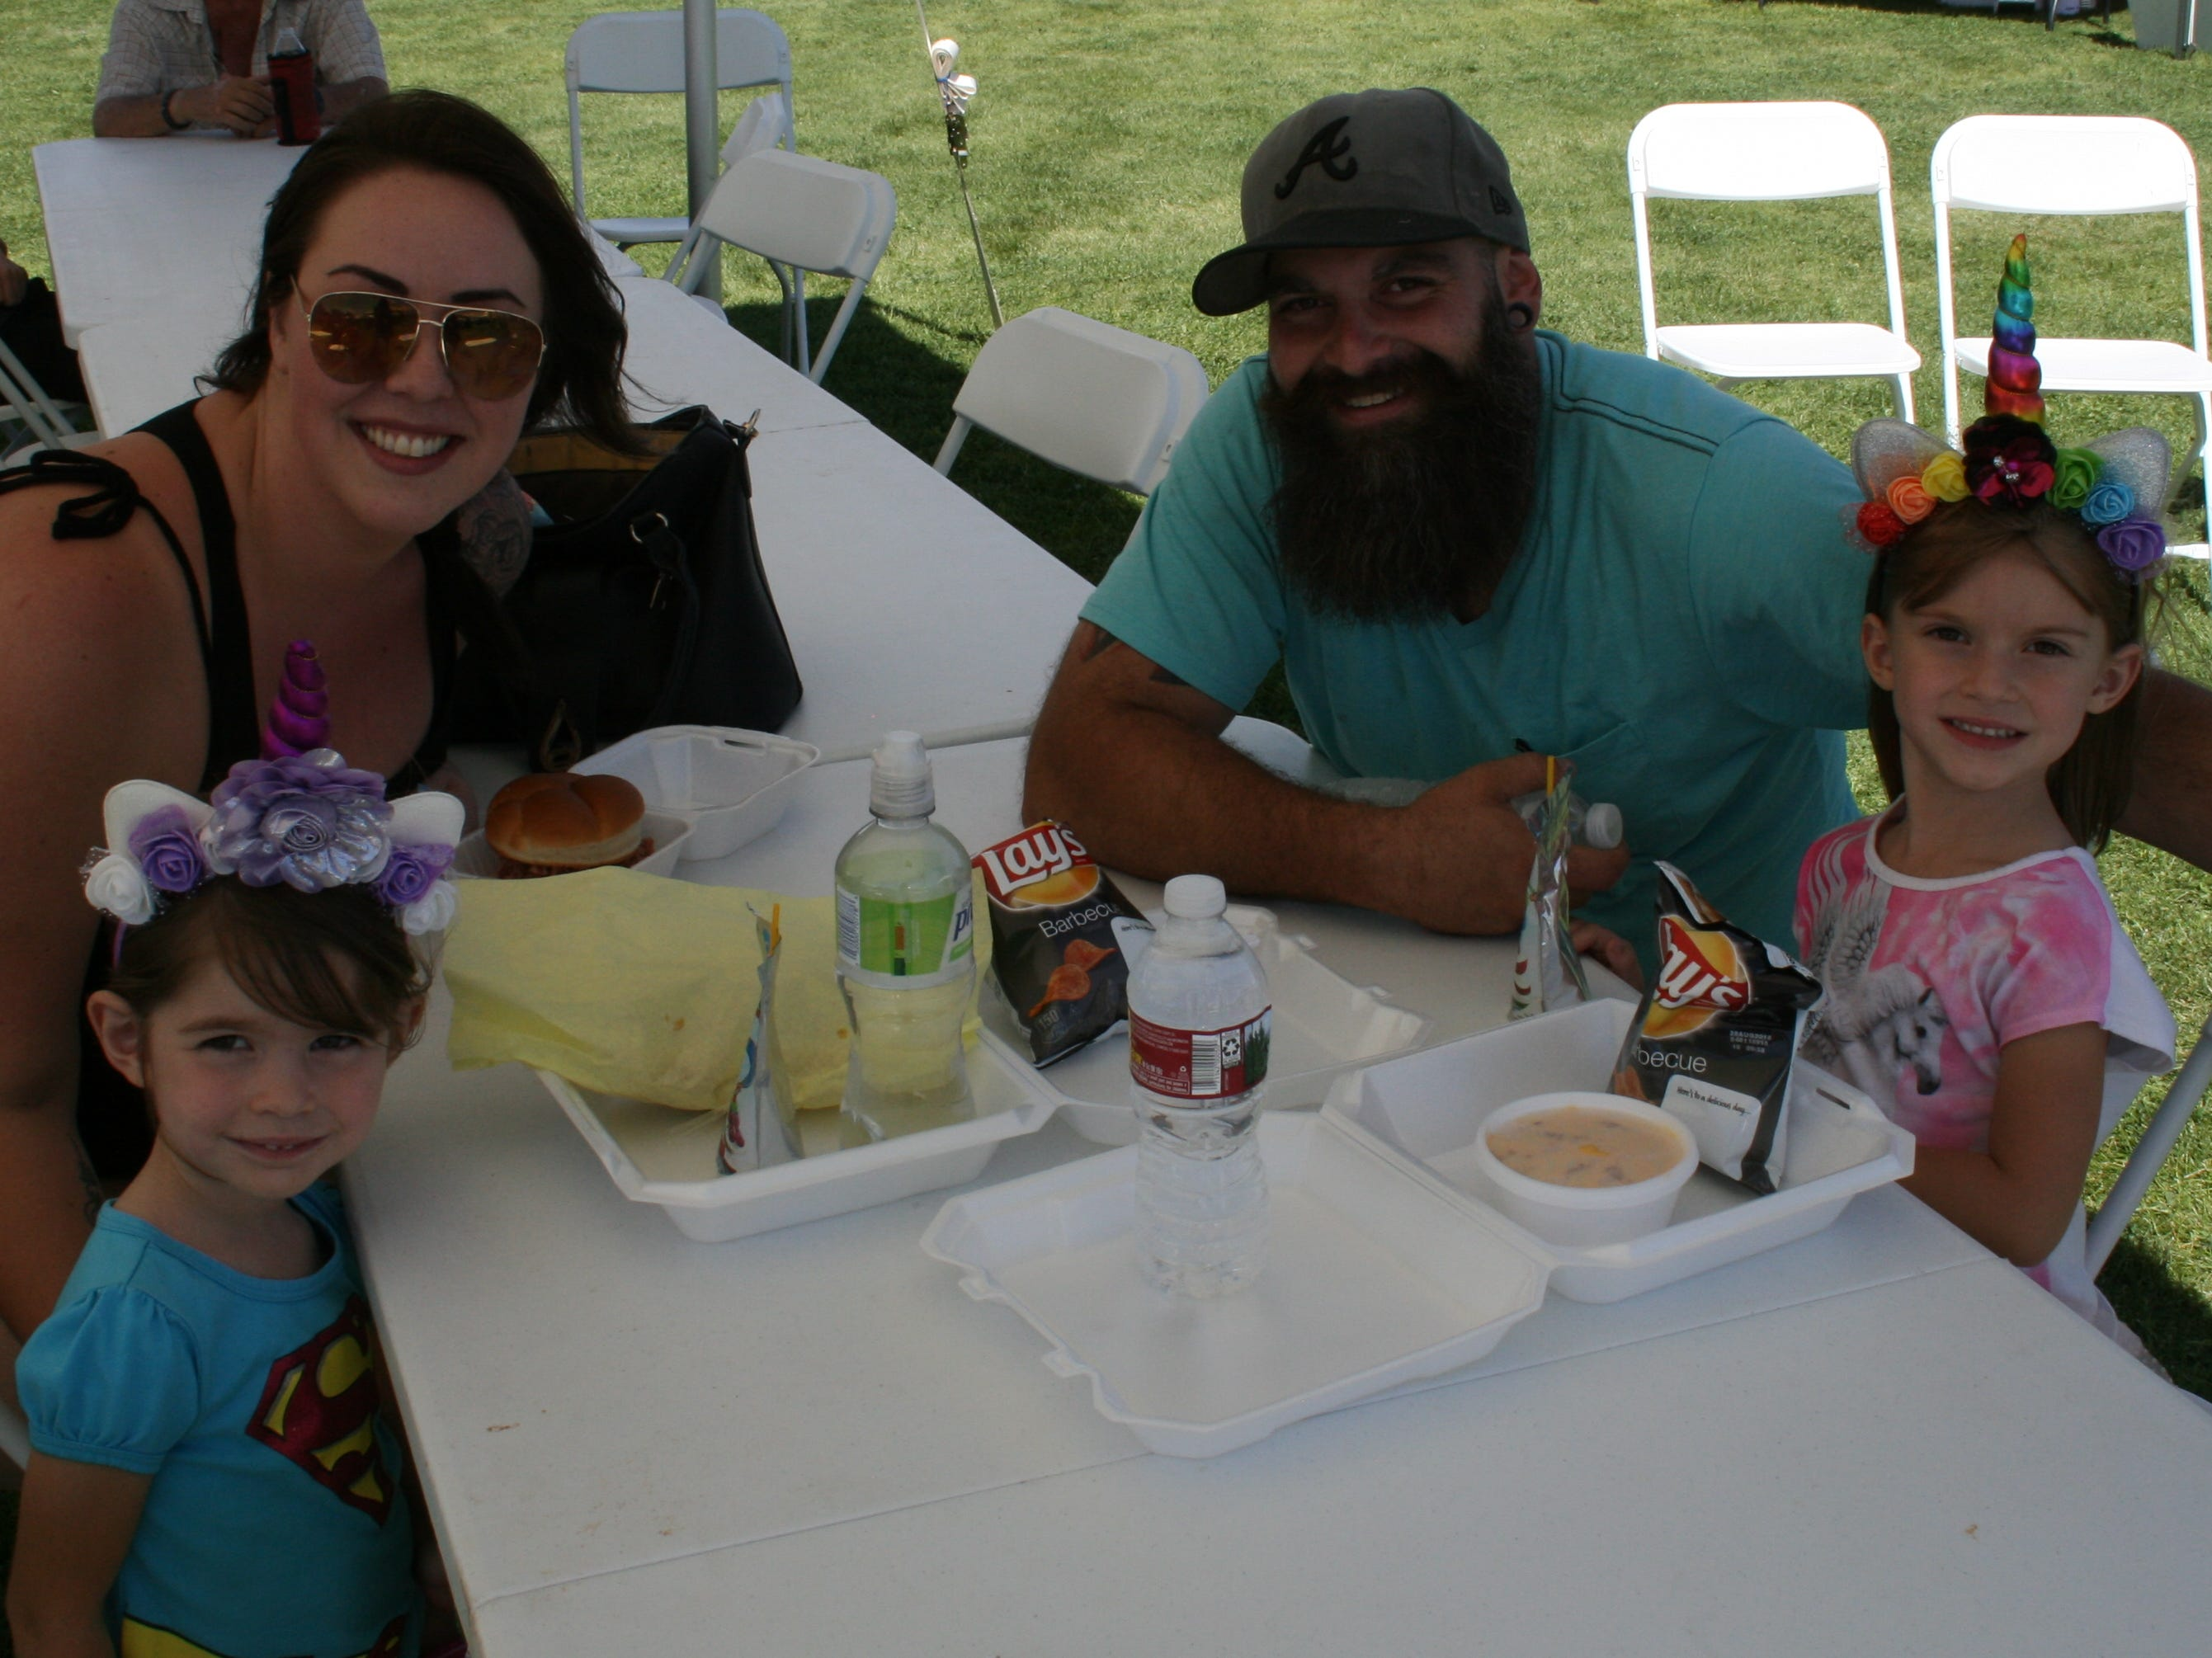 Anaveya, Maddy Carty, Matt Levitt and Jennabree eat lunch at Cornfest in Enterprise on Aug. 25, 2018.